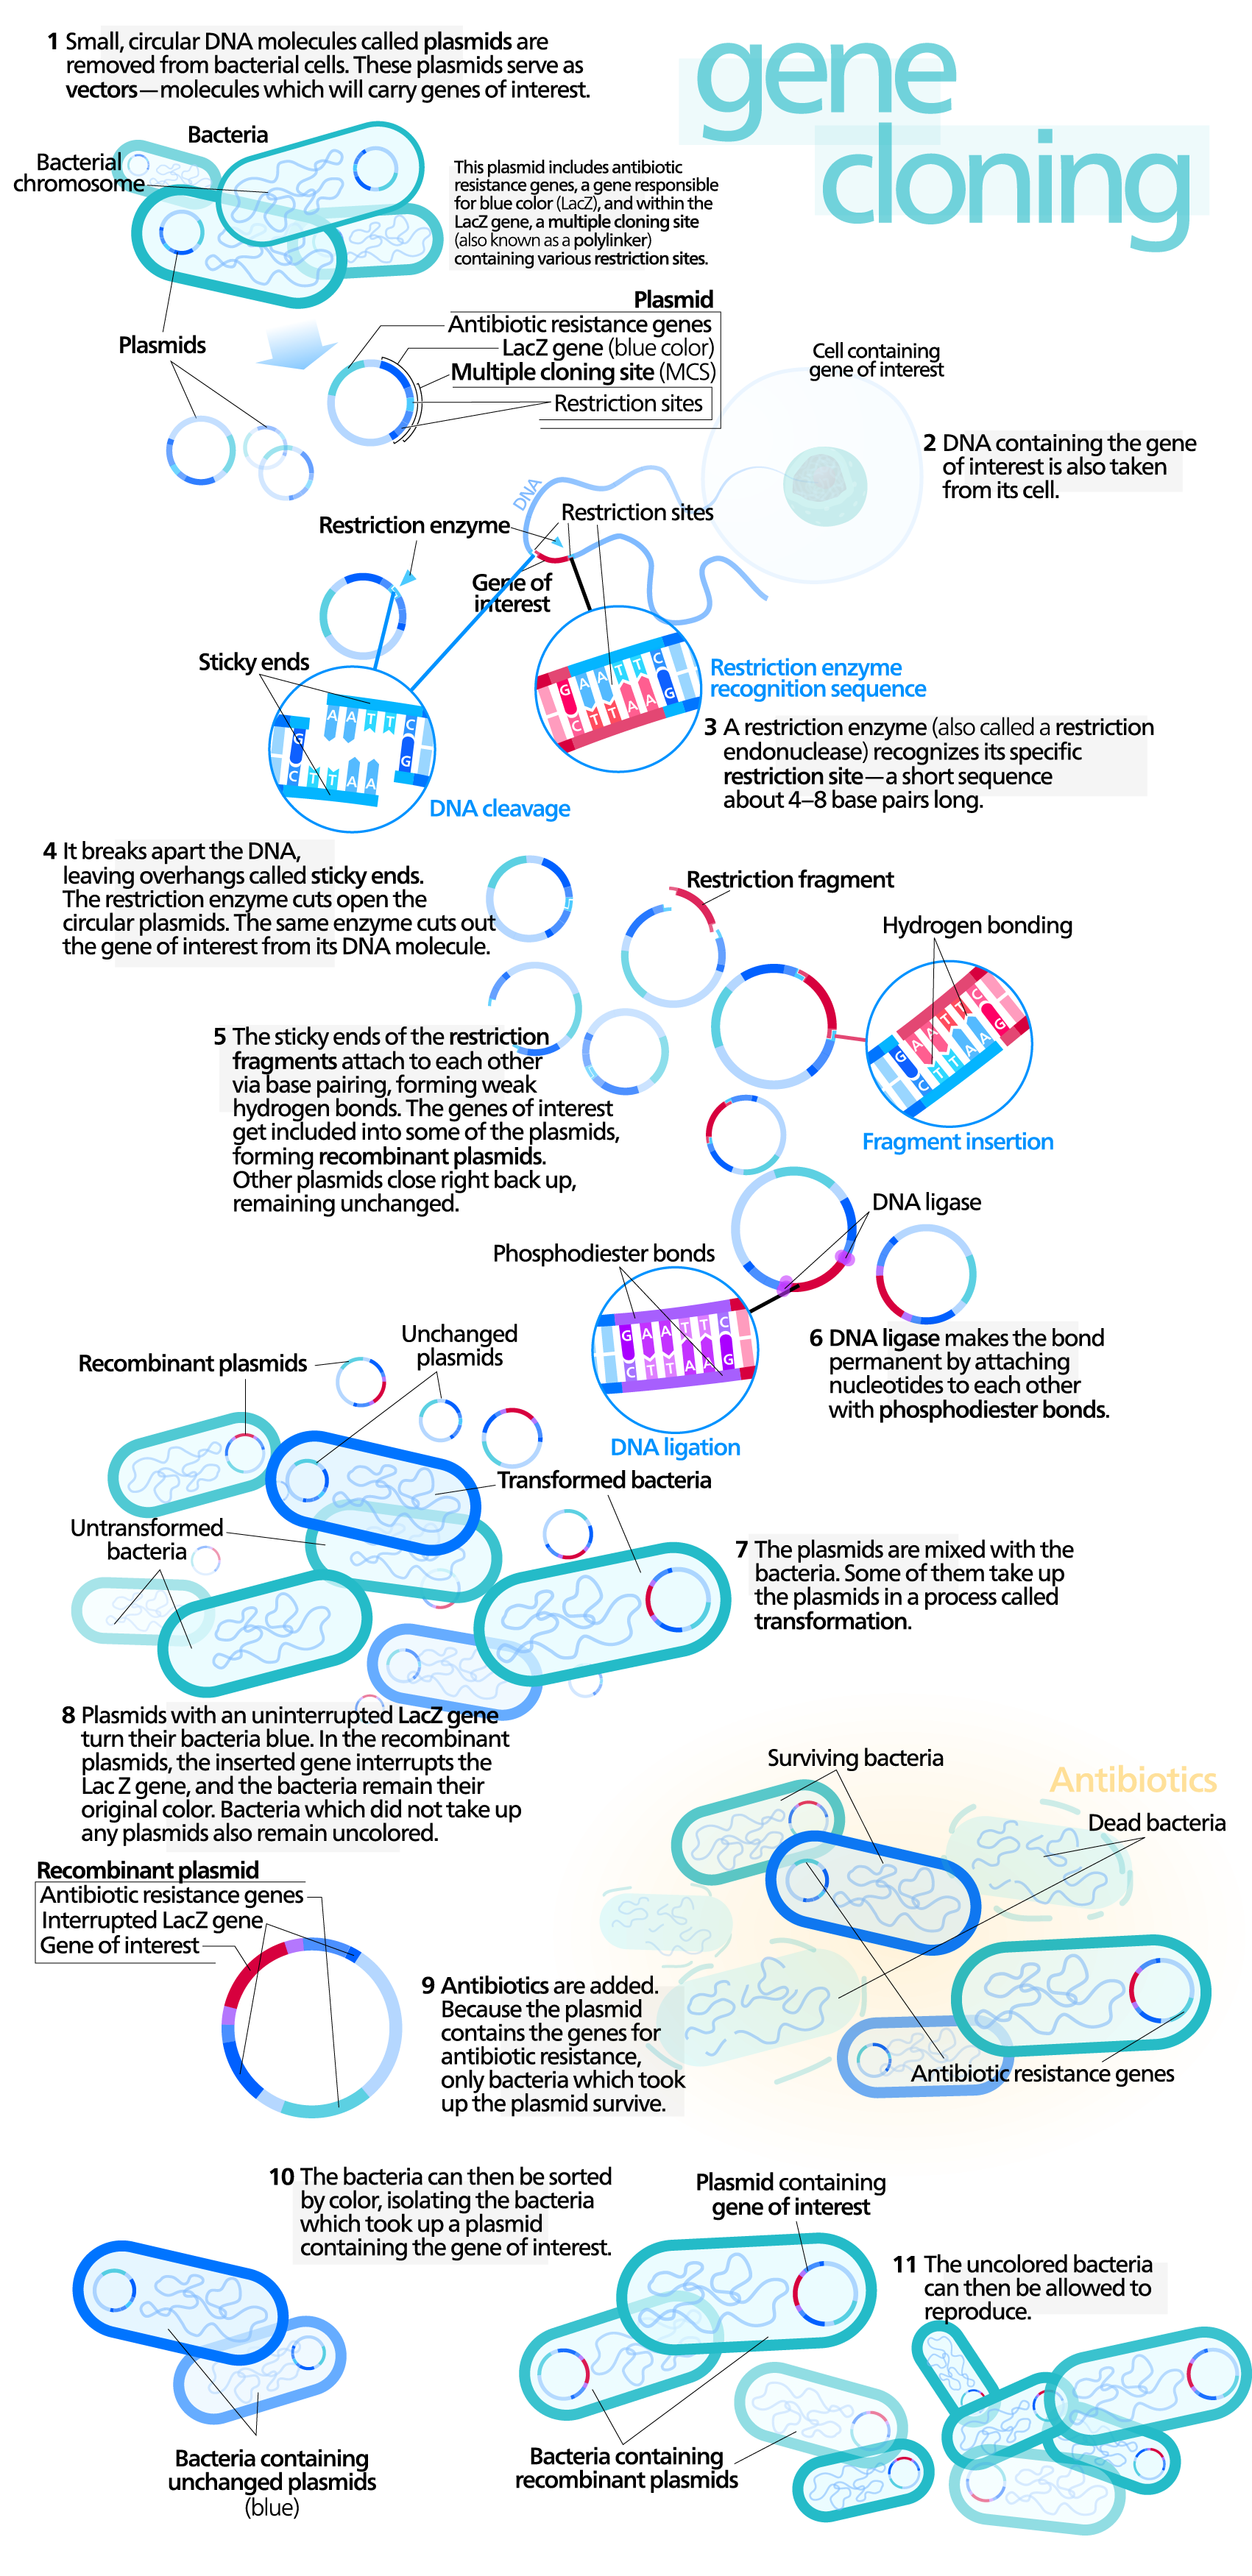 Cloning Process Diagram | anatomy chimie | Pinterest | Diagram ...